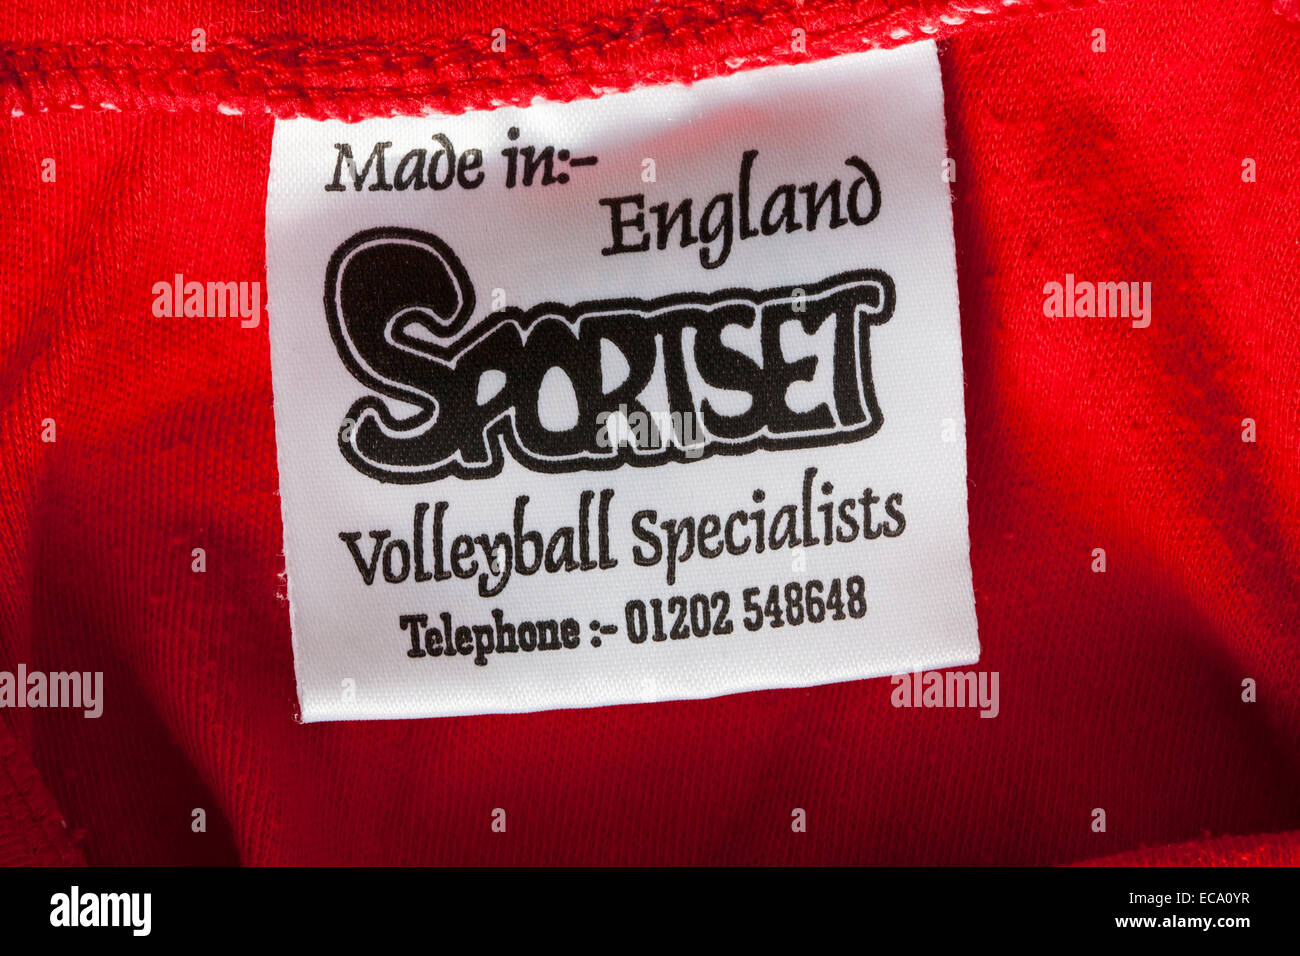 label in clothing - Made in England Sportset Volleyball specialists - Stock Image